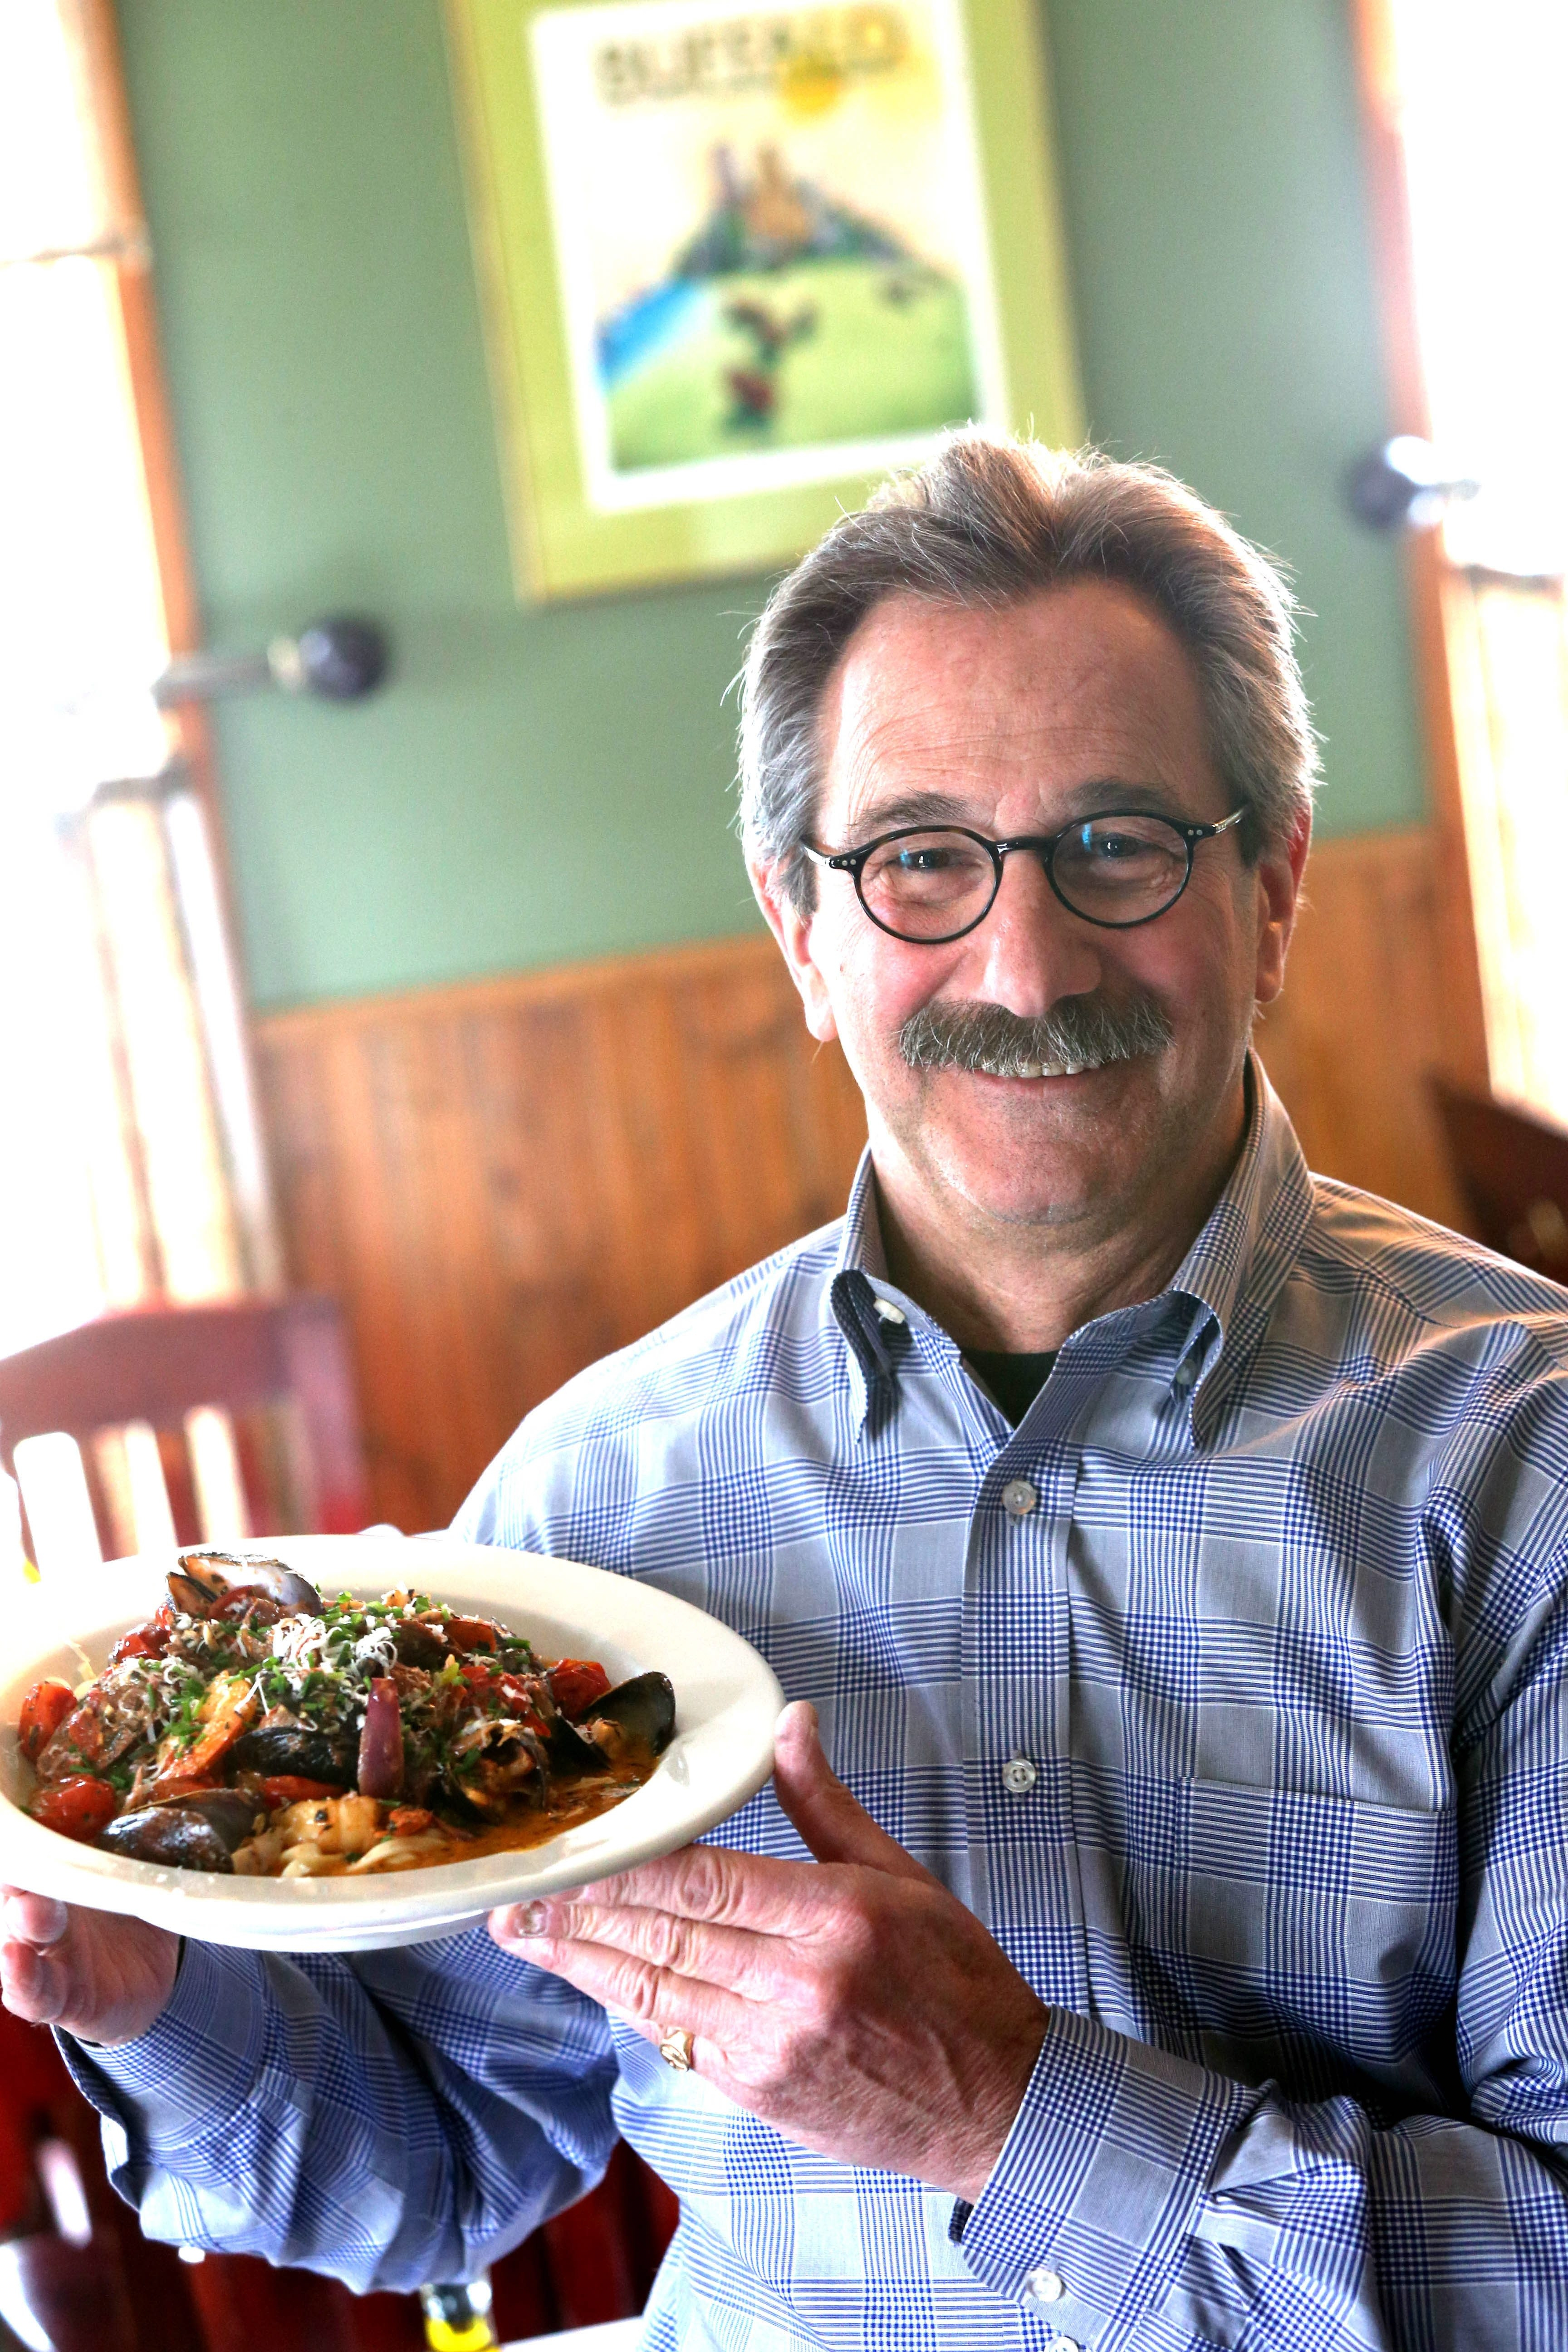 Lee Federiconi, owner of Lebro's in Getzville, shows off a plate of homemade pasta with sausage and seafood medley.